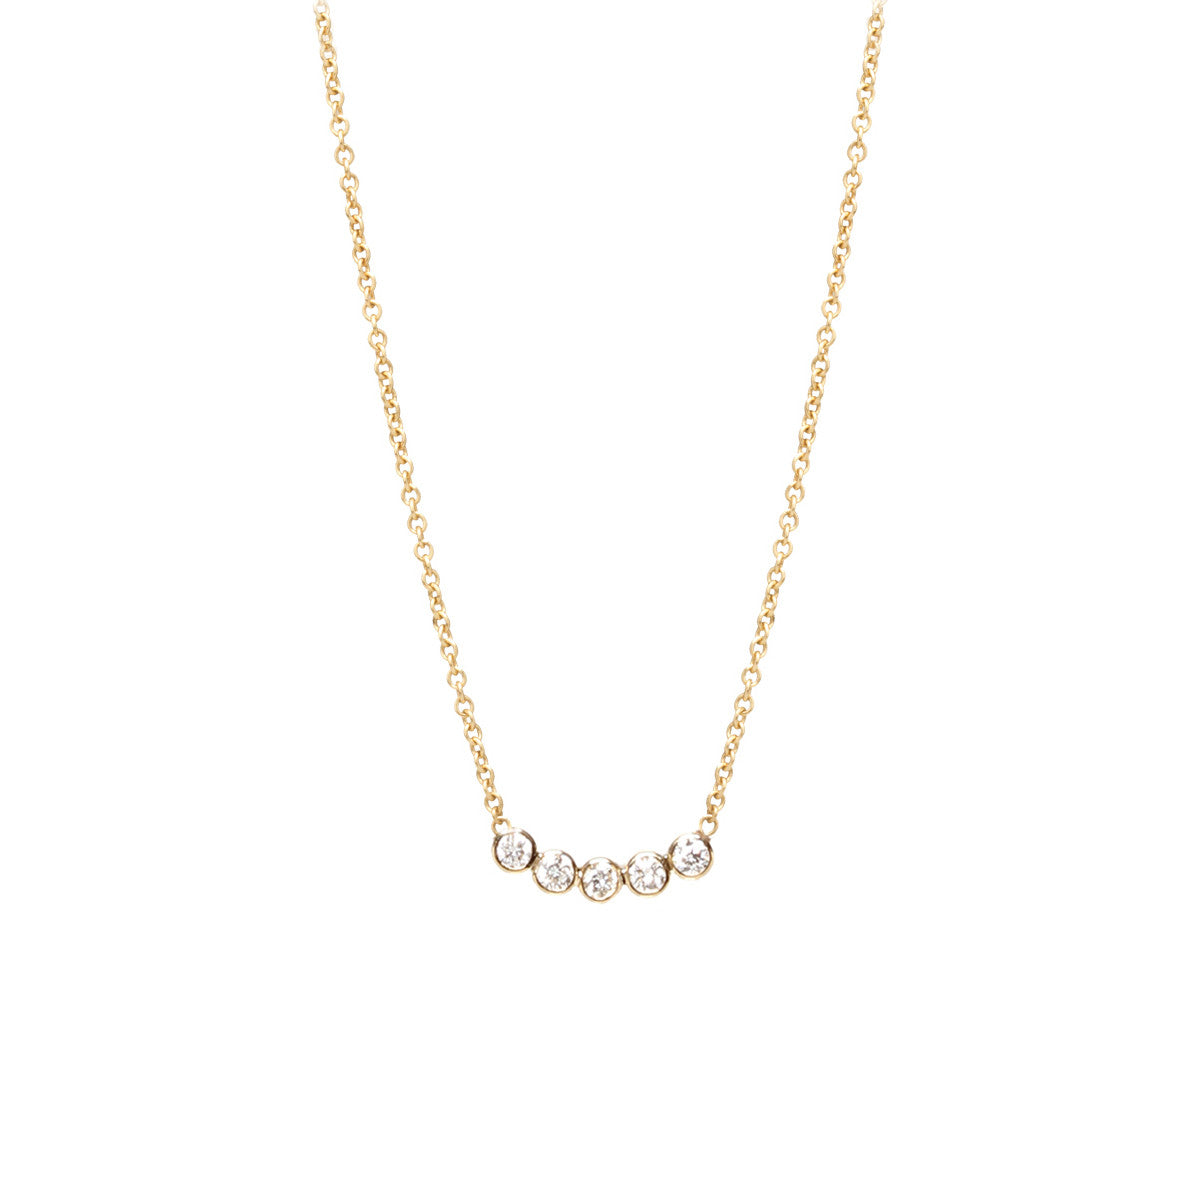 Zoë Chicco 14kt Yellow Gold Five Diamond Necklace